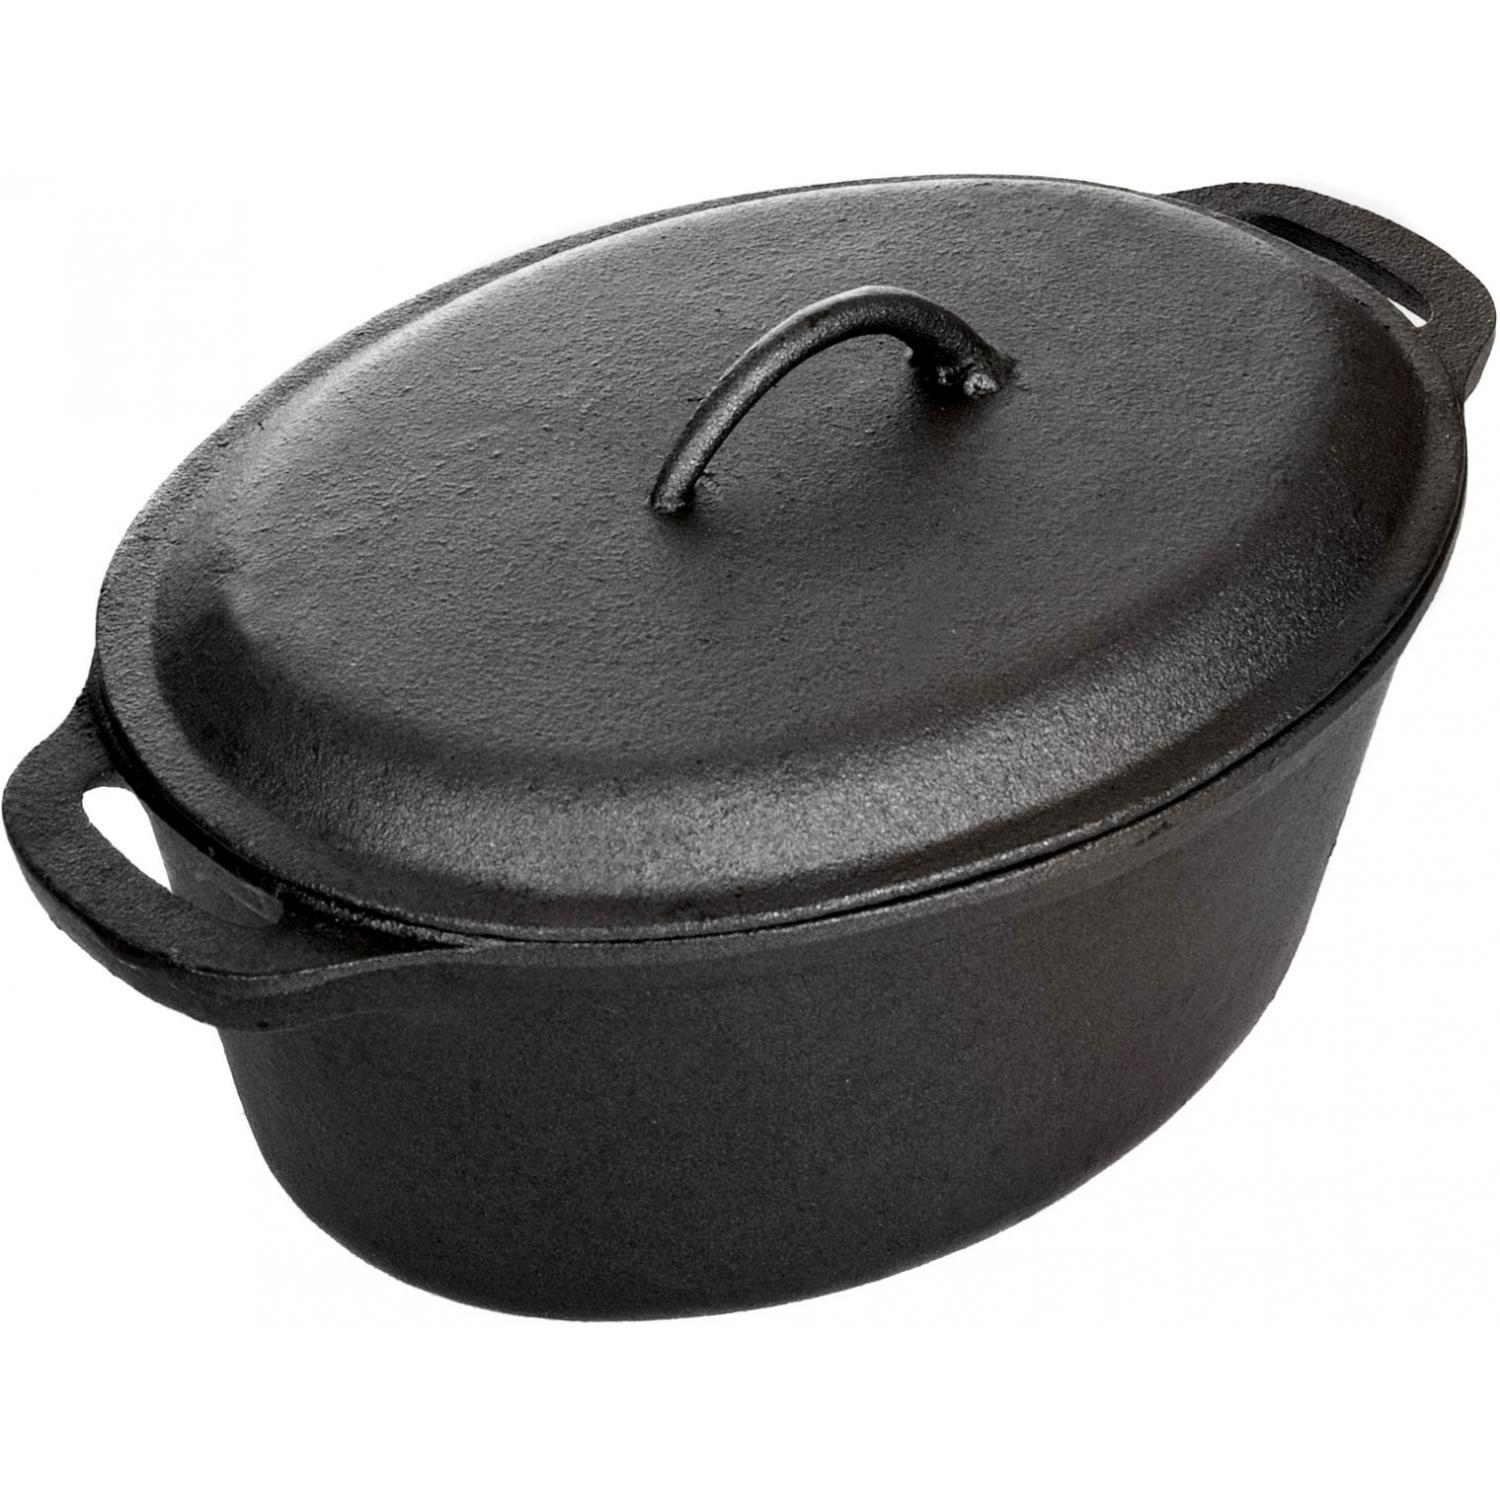 Picture of Cajun Cookware Pots 5 Quart Seasoned Cast Iron Oval Casserole Pot